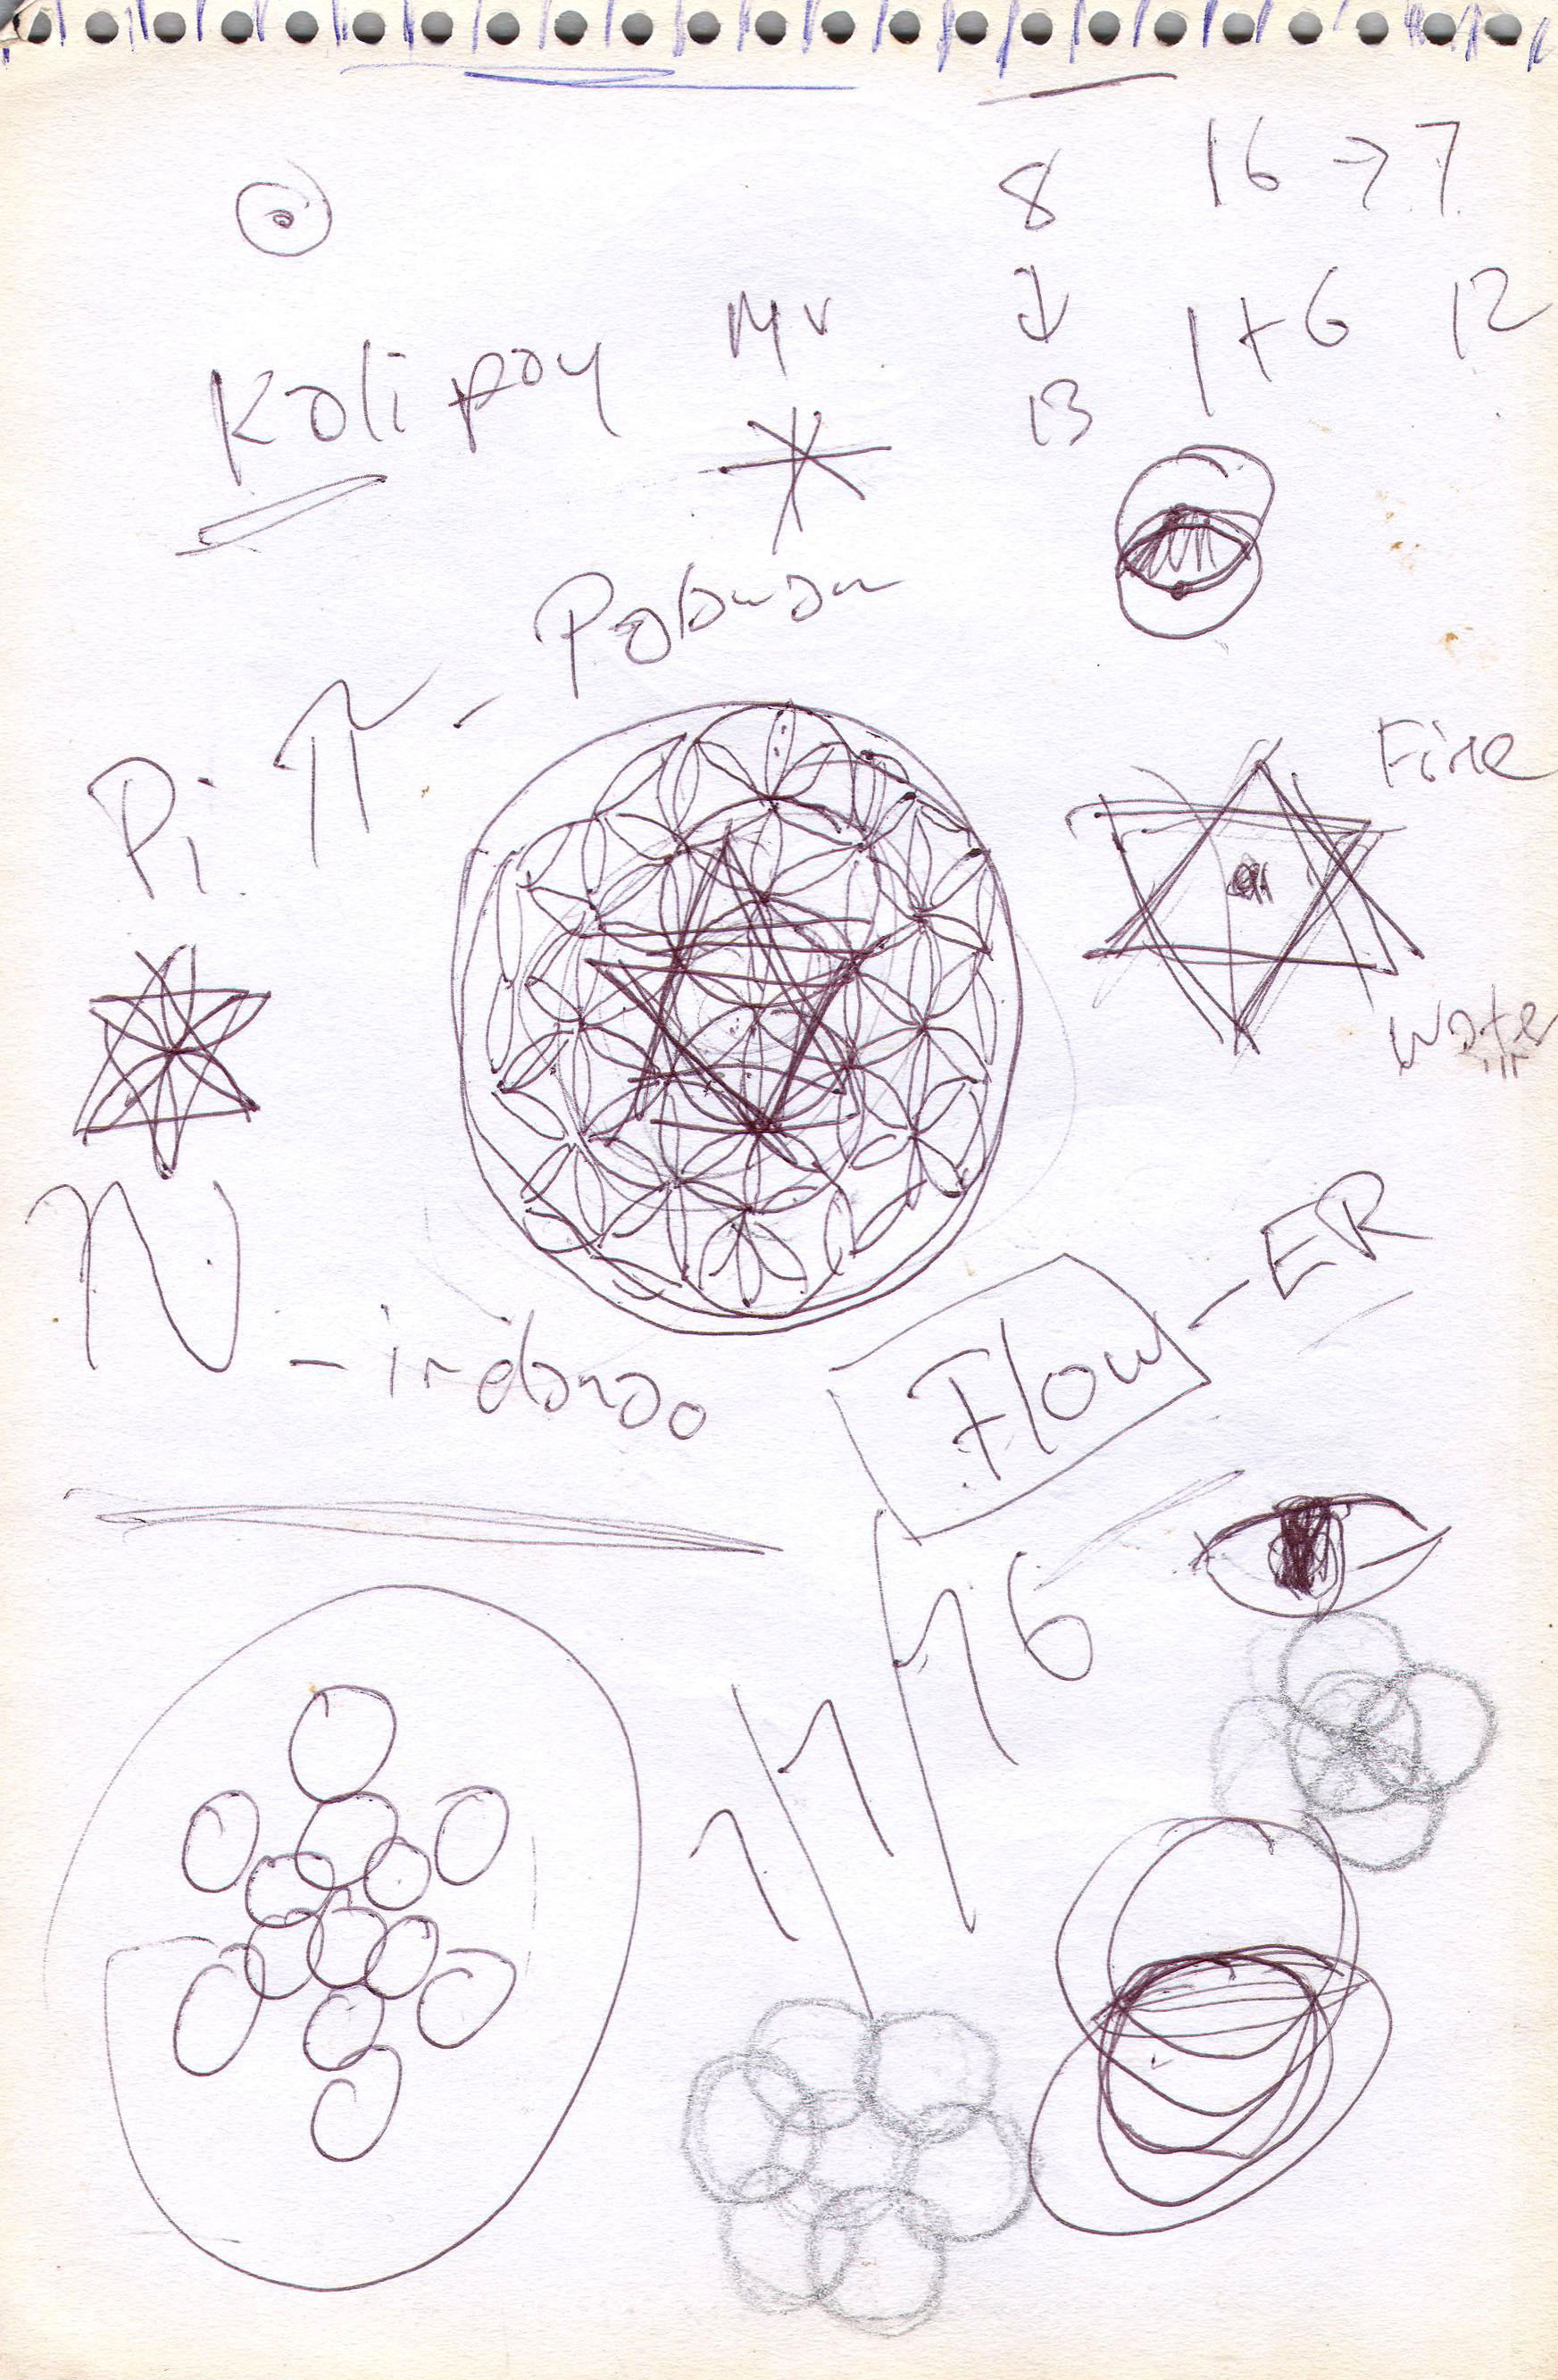 Sketches from the source by a Philippine shaman Bong Delatorre 38